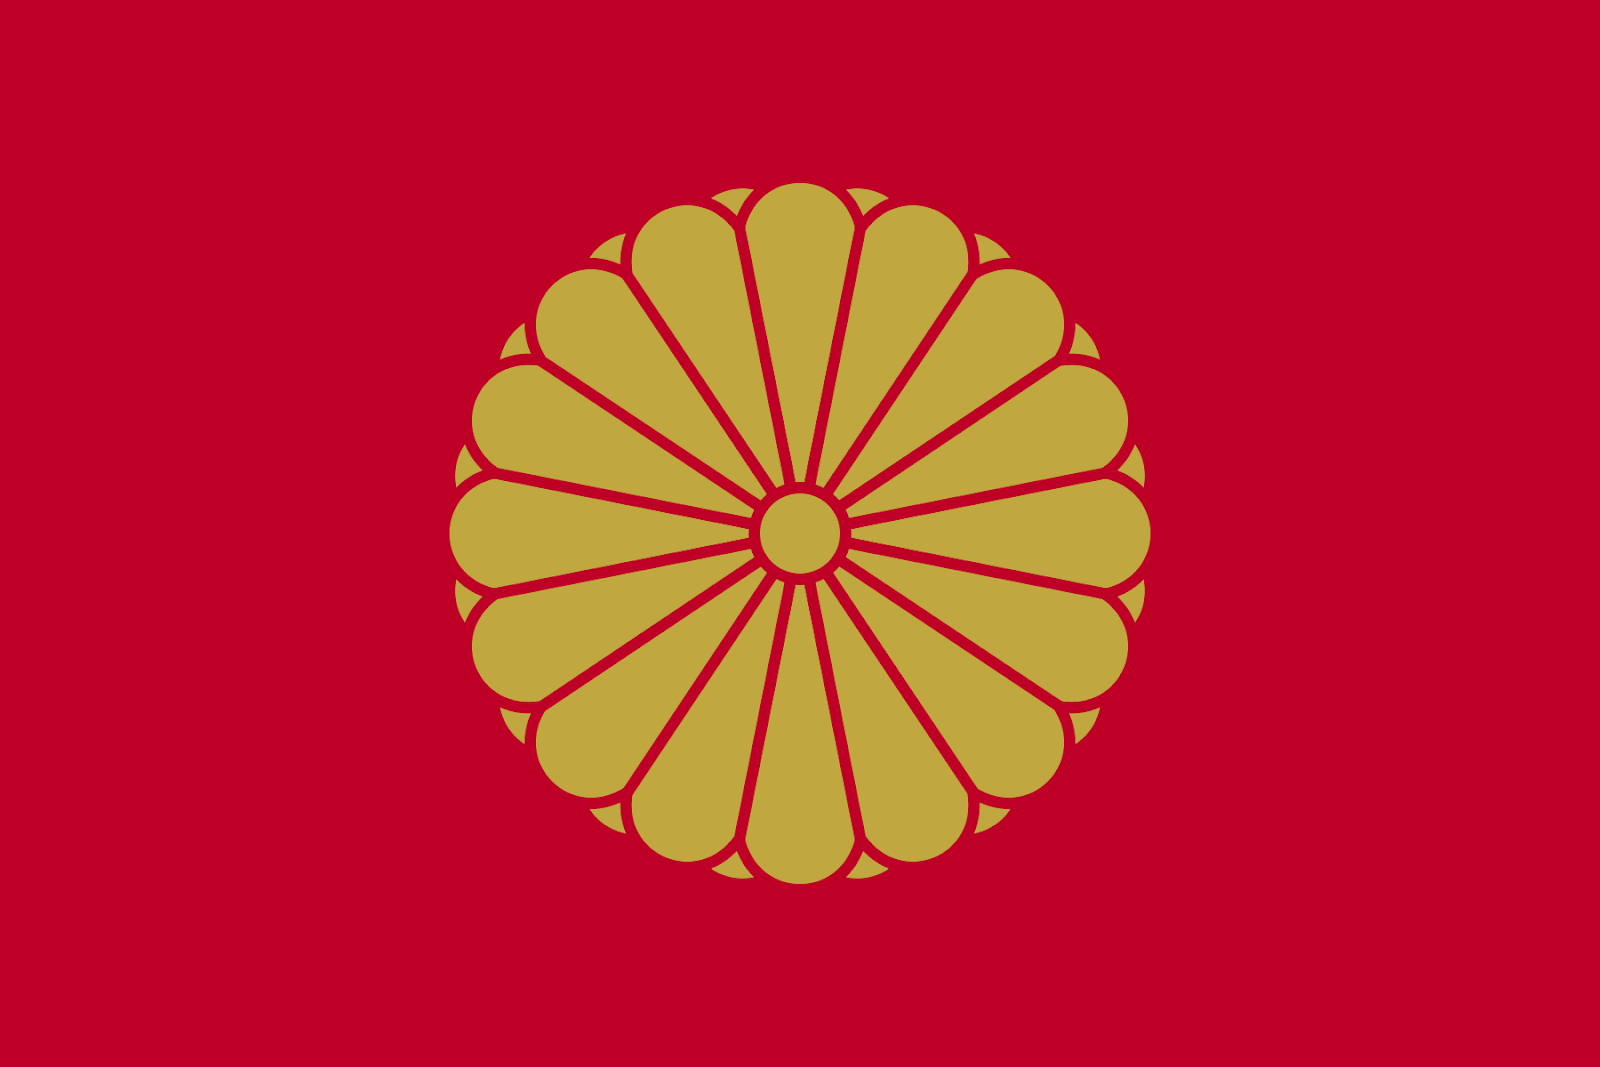 https://upload.wikimedia.org/wikipedia/commons/thumb/6/6d/Flag_of_the_Japanese_Emperor.svg/1800px-Flag_of_the_Japanese_Emperor.svg.png